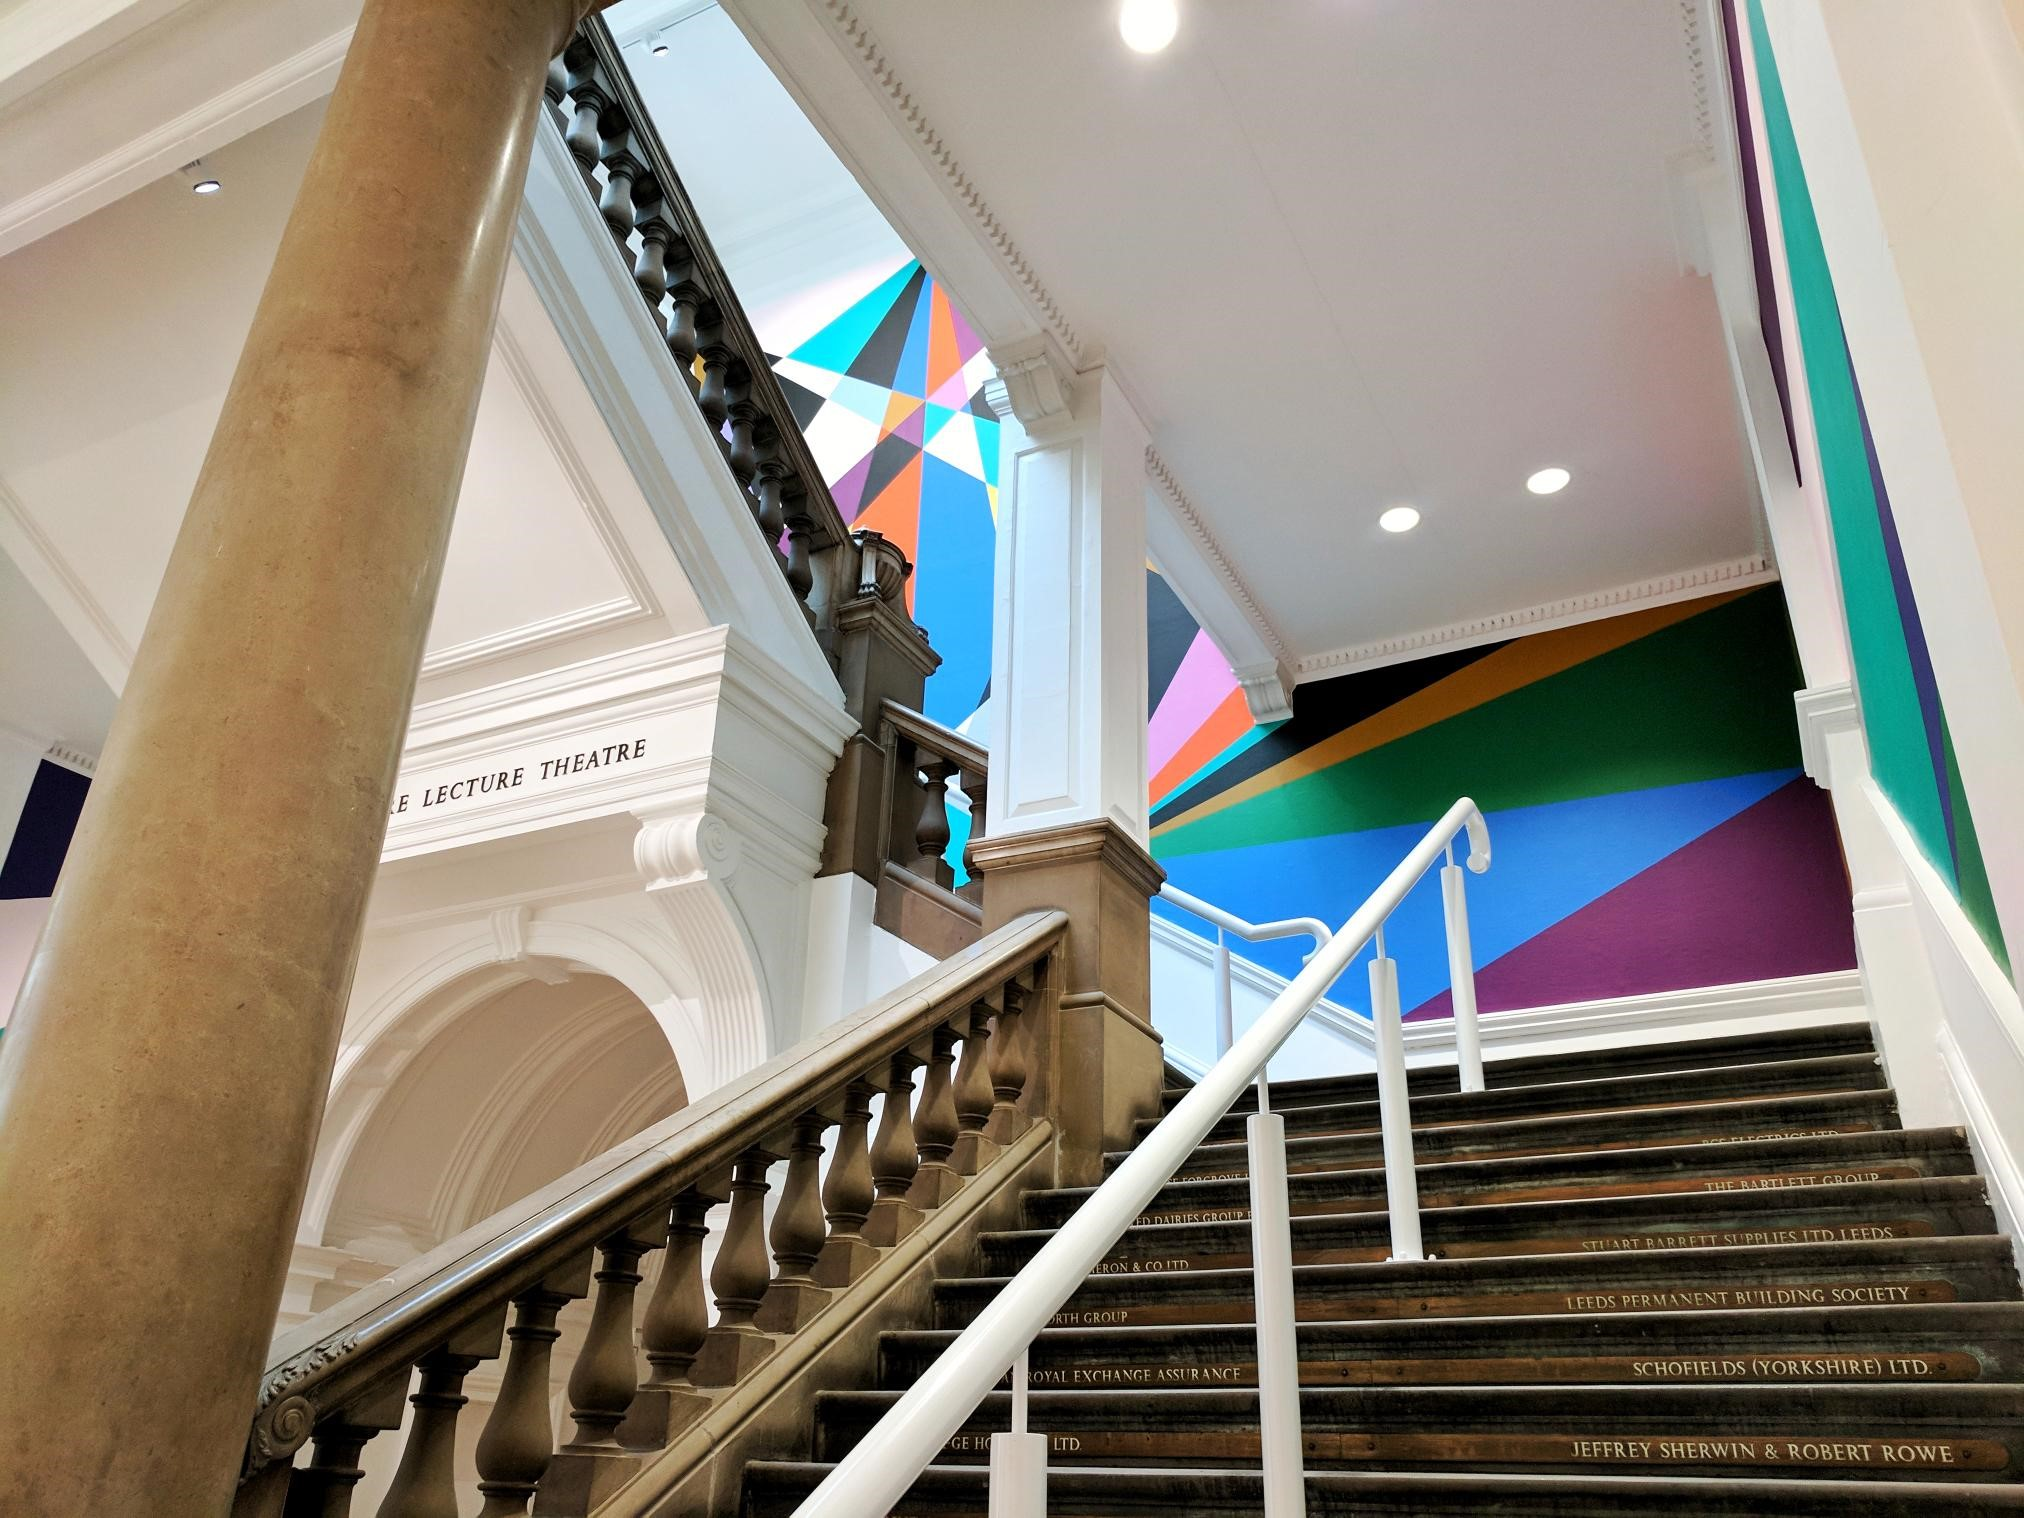 Student Annika's image from inside Leeds Art Gallery